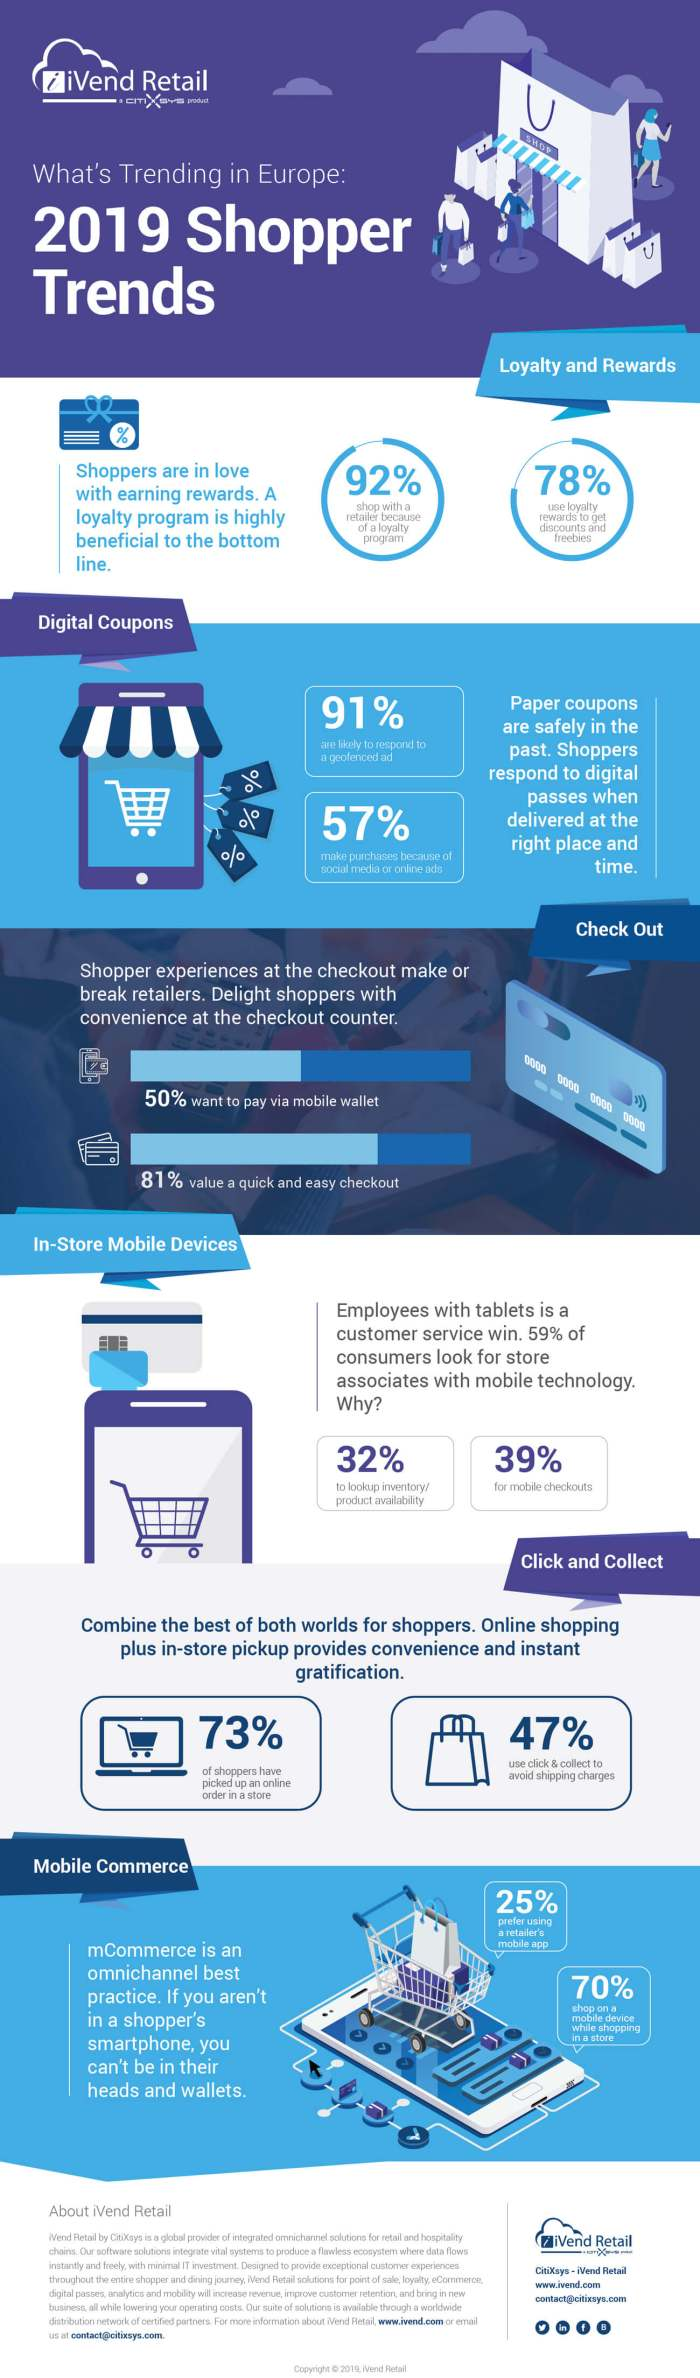 2019 Global Shopper Trends - Europe - Infographic